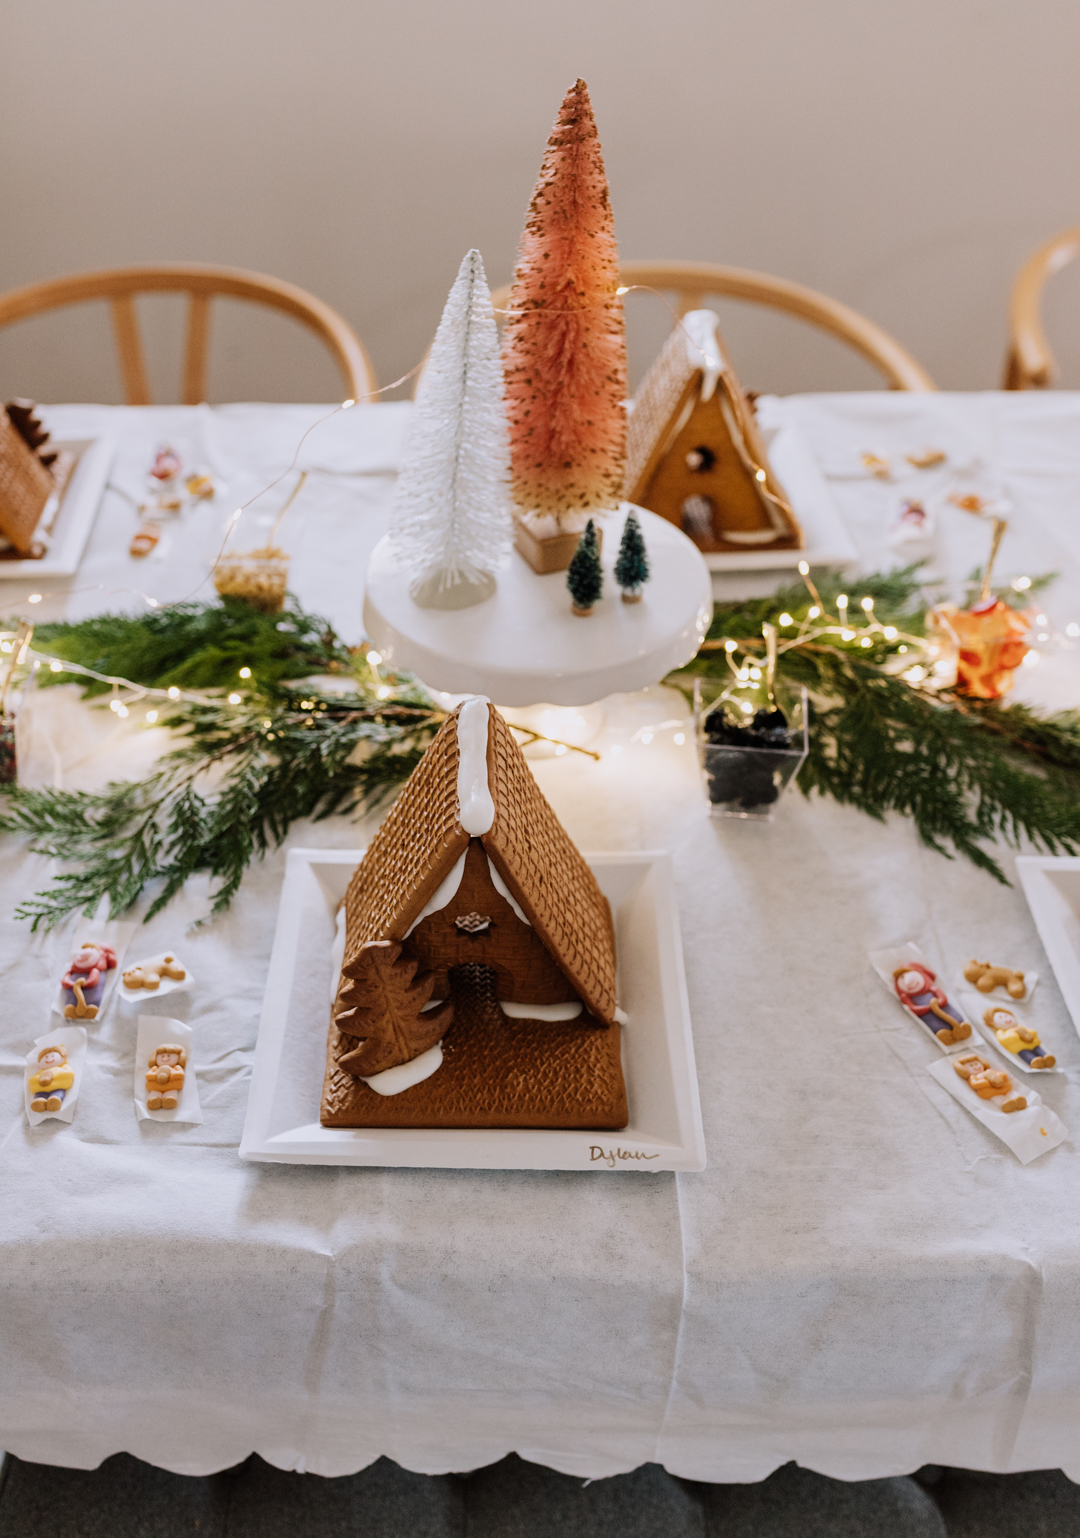 simple tips to set up a fun gingerbread decorating party | thelovedesignedlife.com #aframe #gingerbread #christmas #holidays